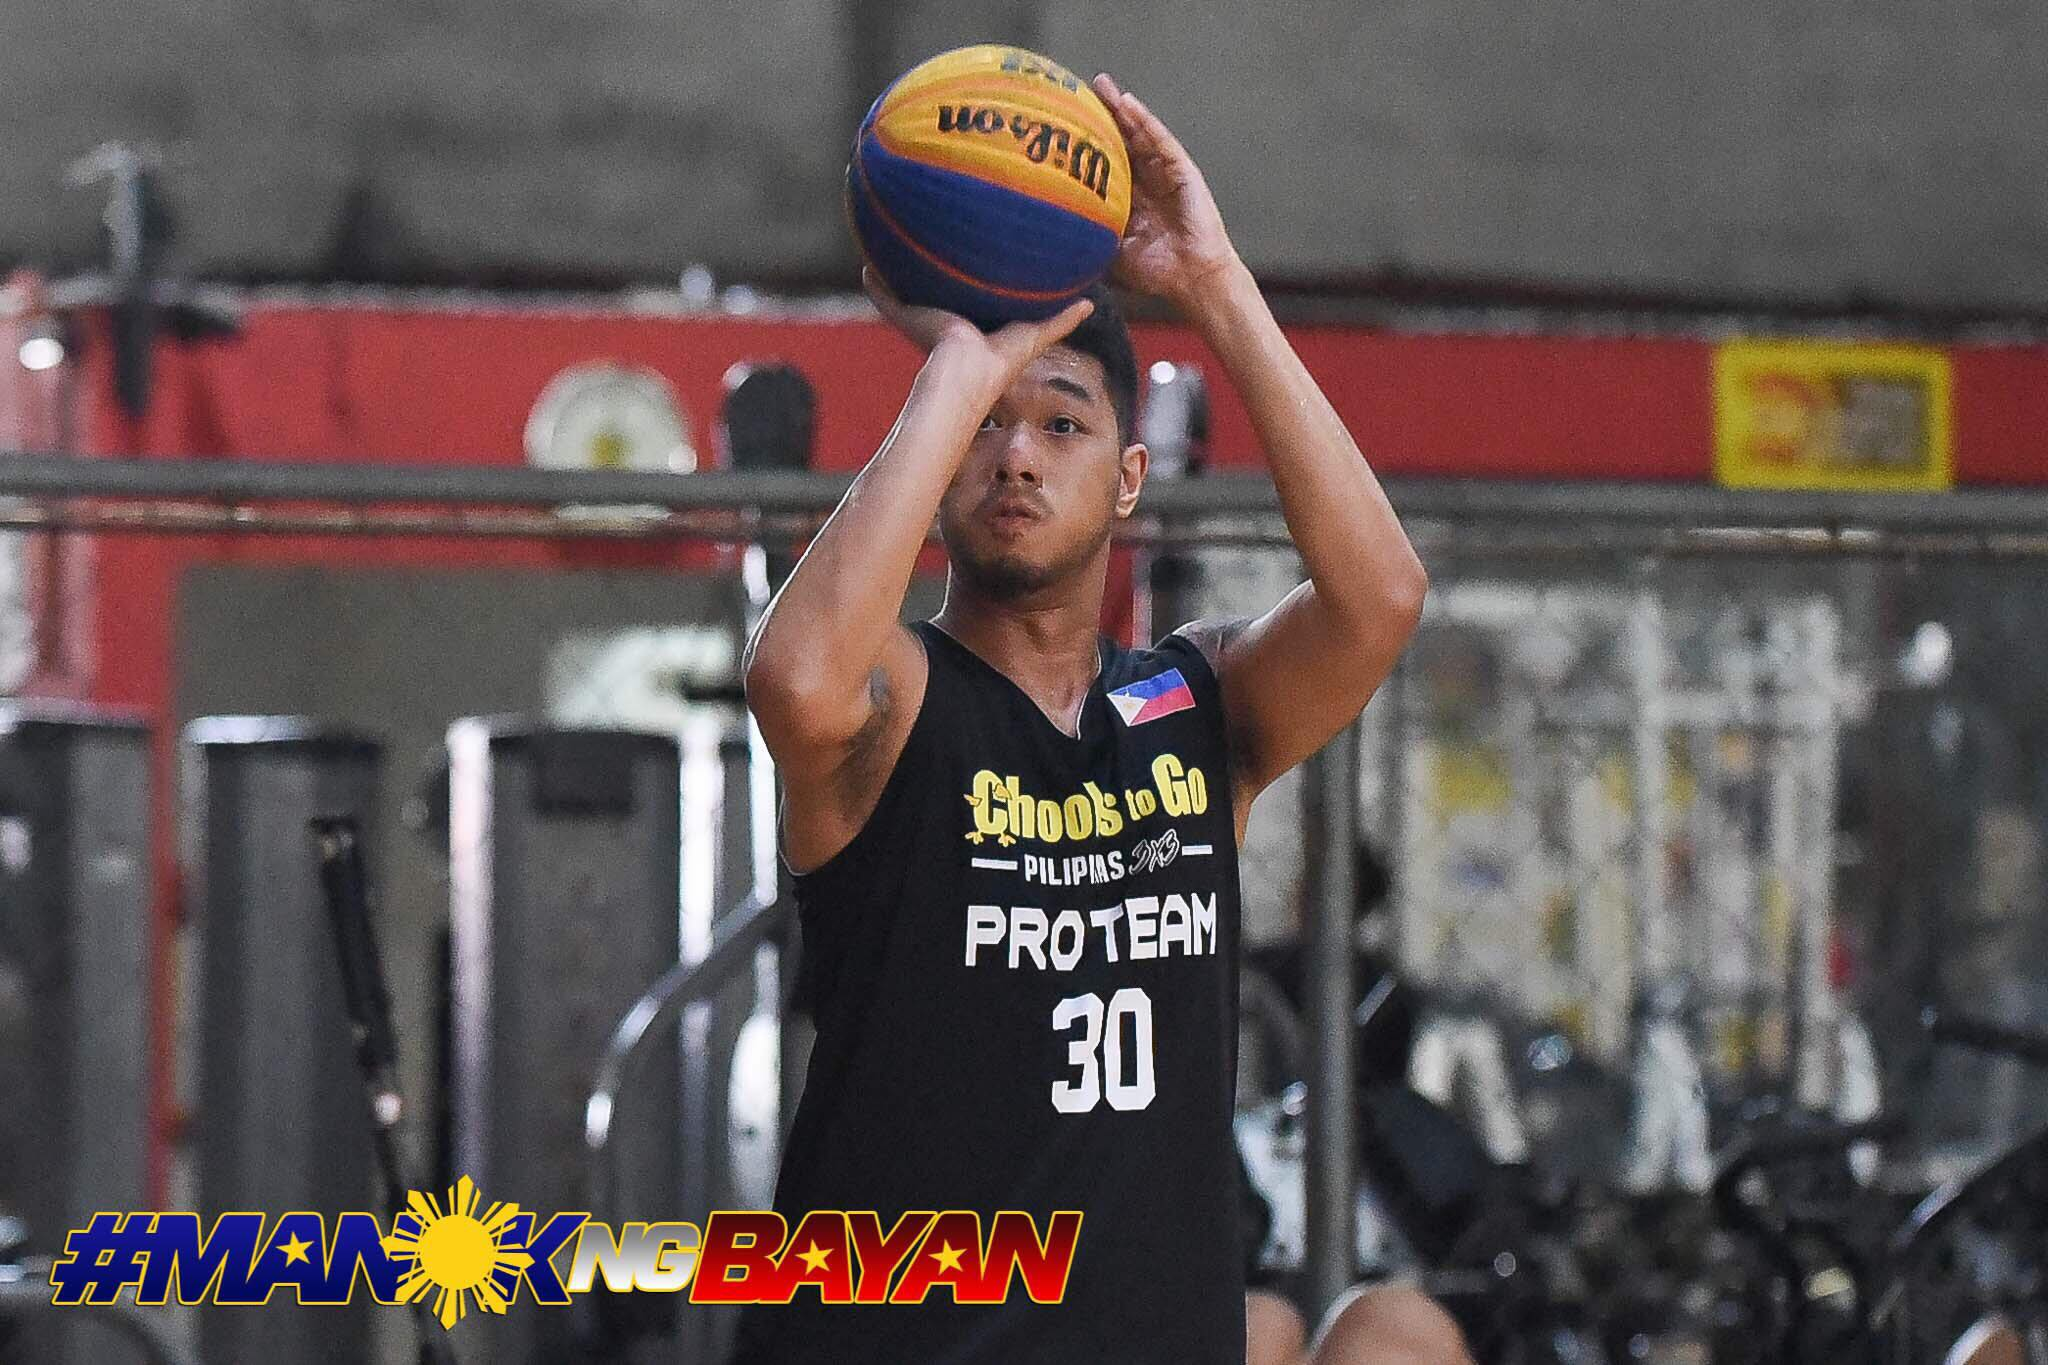 FILE-PHOTO-Chris-De-Chavez How Chris De Chavez and his family survived COVID-19 at home 3x3 Basketball Chooks-to-Go Pilipinas 3x3 News  - philippine sports news